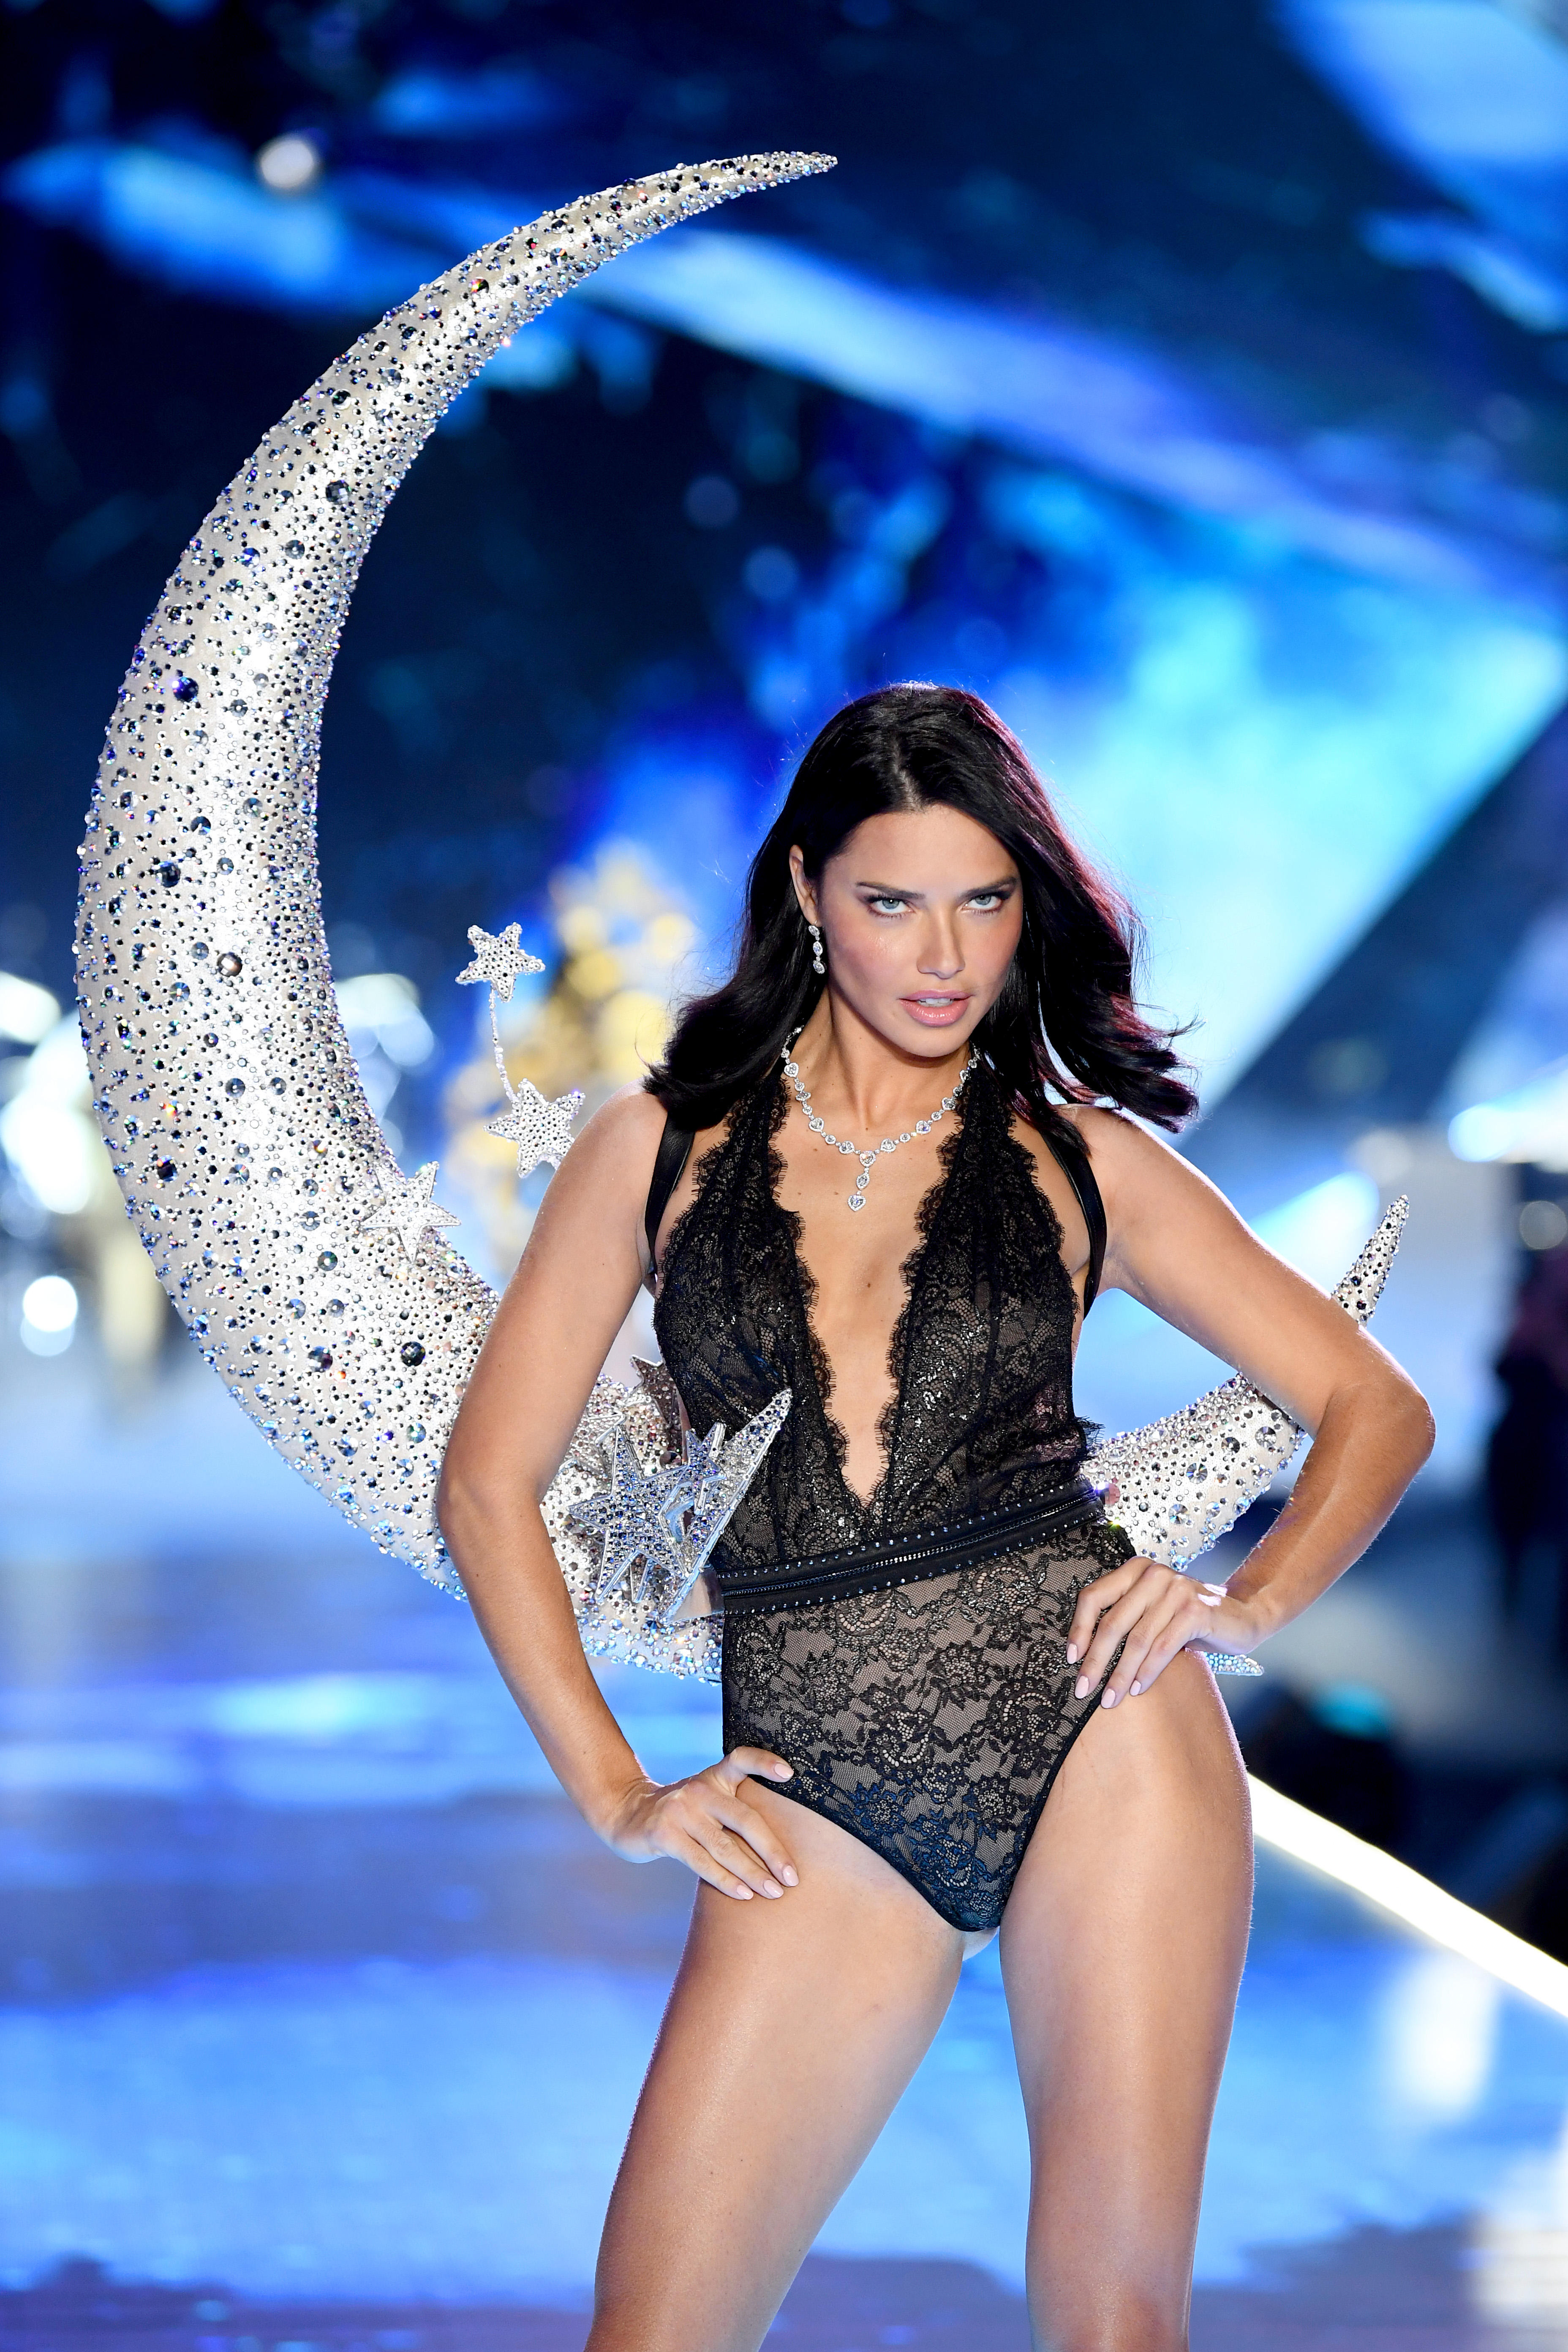 Adriana Lima walks the runway during the 2018 Victoria's Secret Fashion Show at Pier 94 on November 8, 2018, in New York City. (Getty Images)